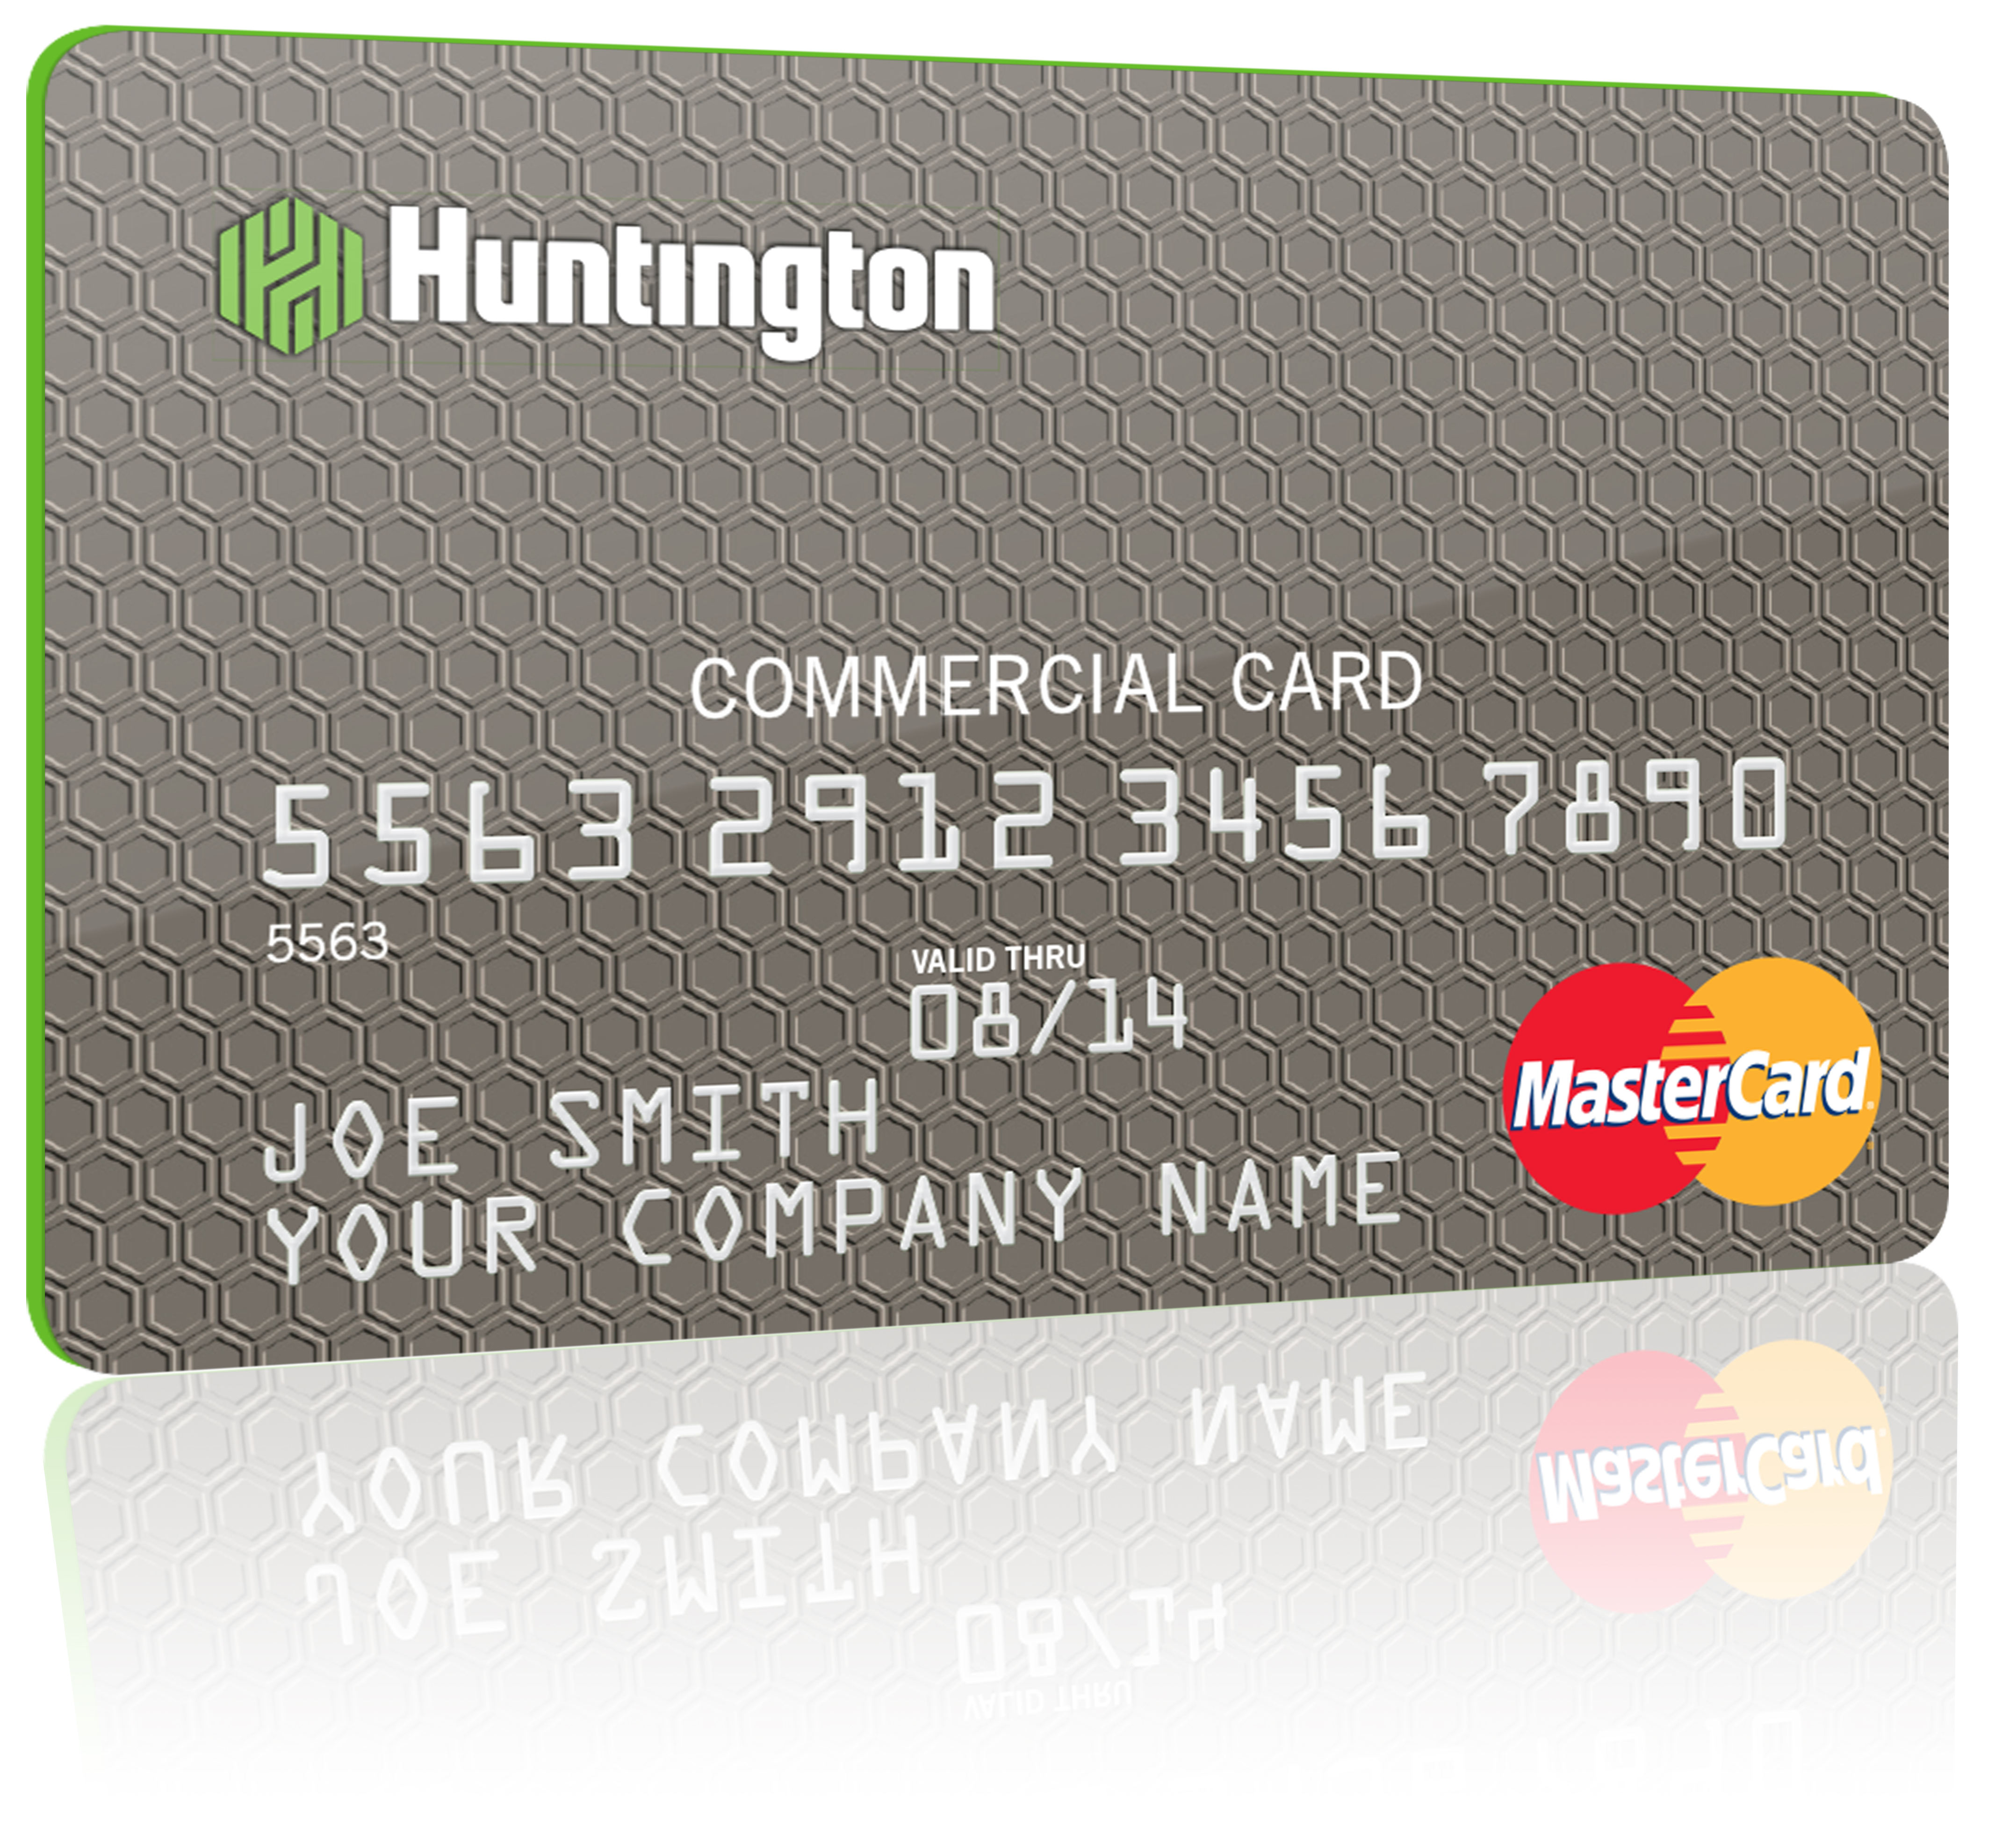 Search huntington bank online - Huntington Bank Introduces Commercial Card Featuring Payables Automation And Monthly Rebates Business Wire